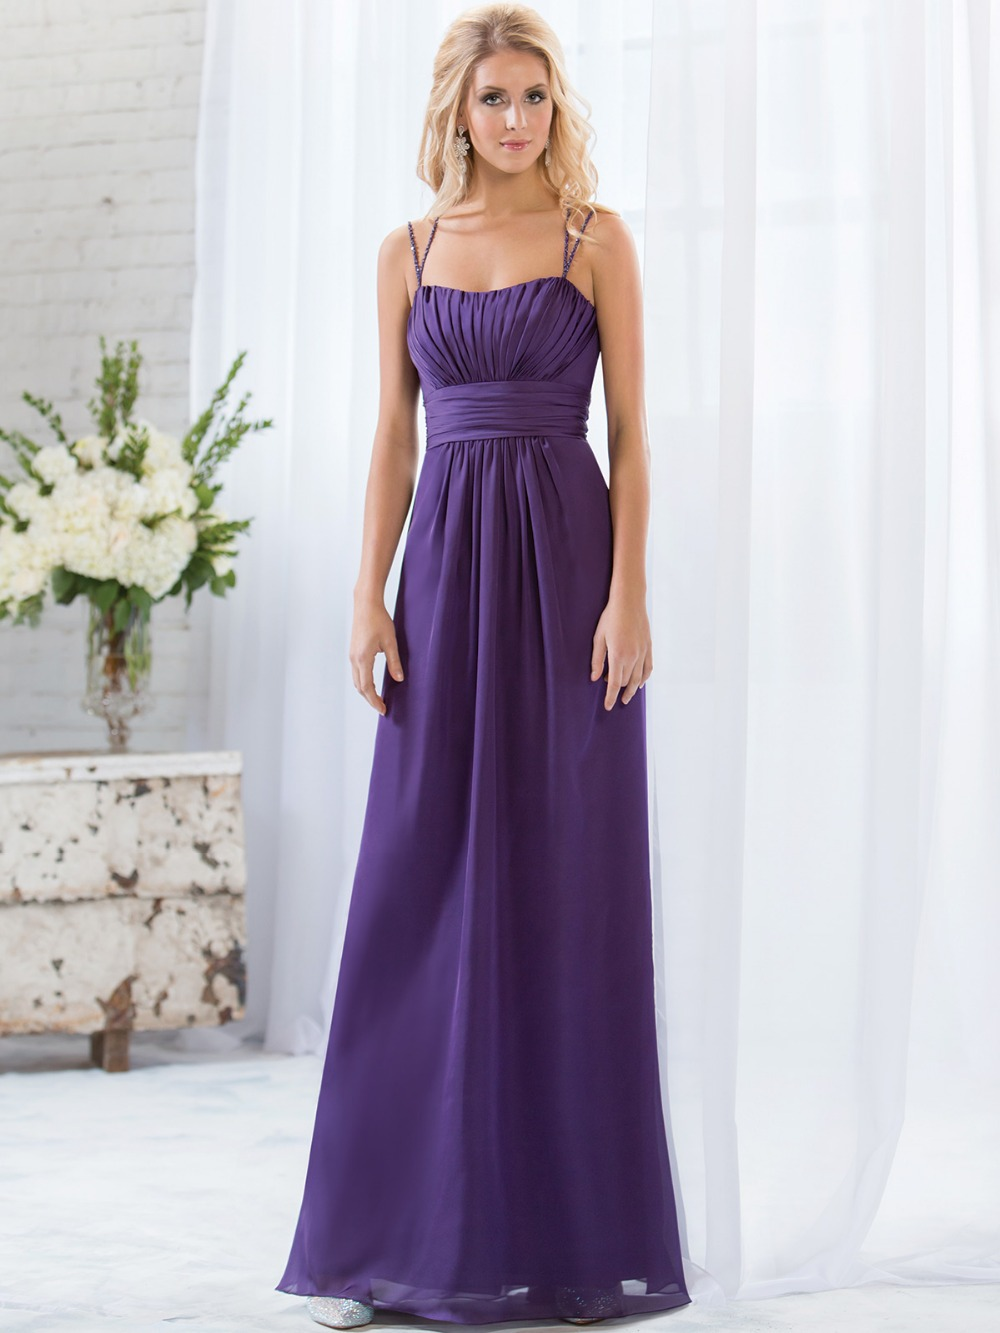 Bridesmaid Dresses  Convertible Bridesmaid Dress by